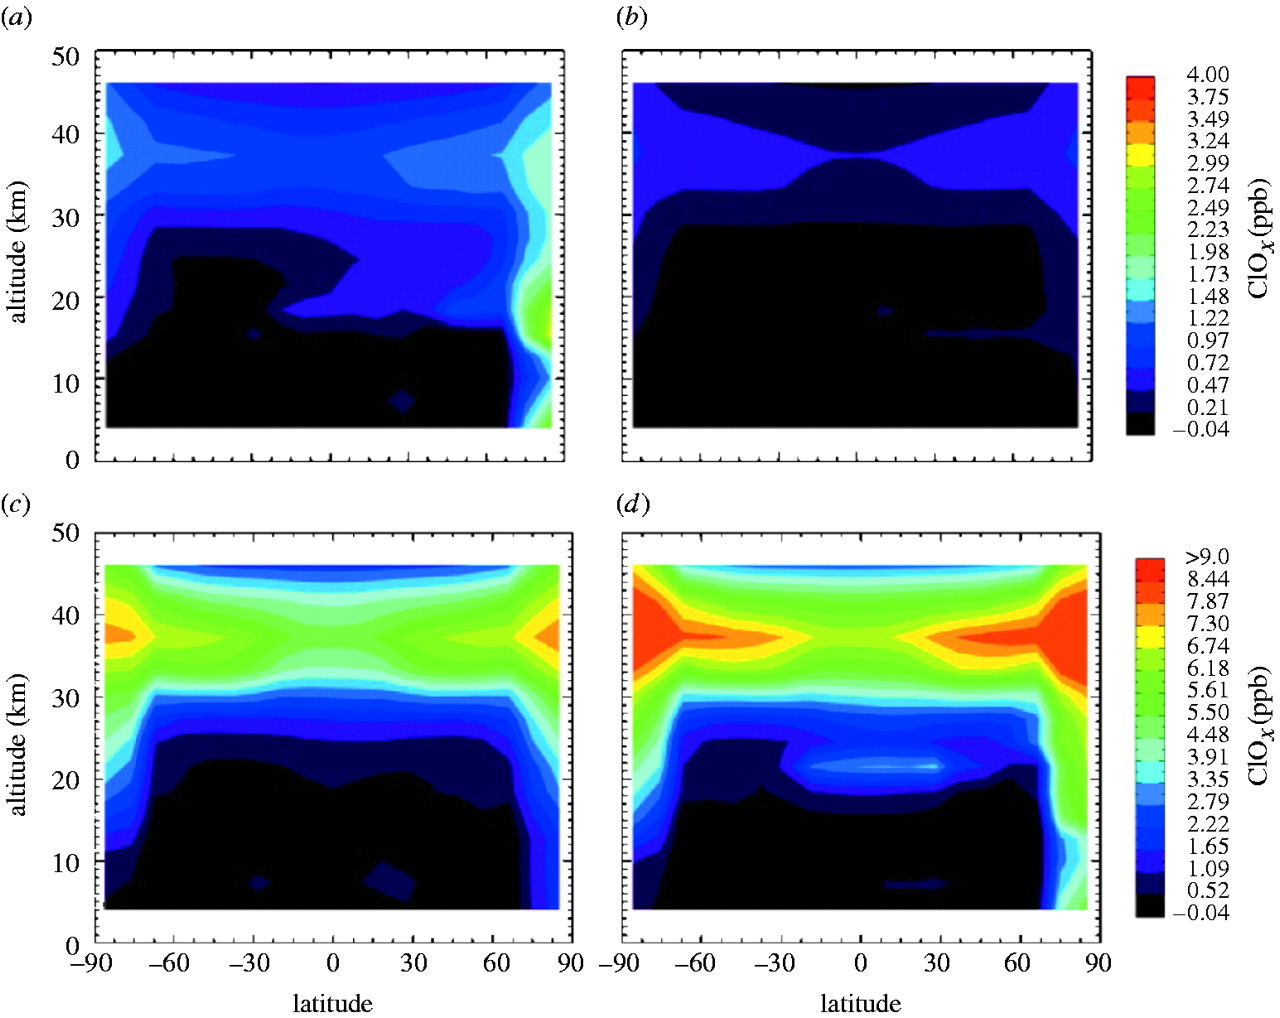 The stability of the stratospheric ozone layer during the